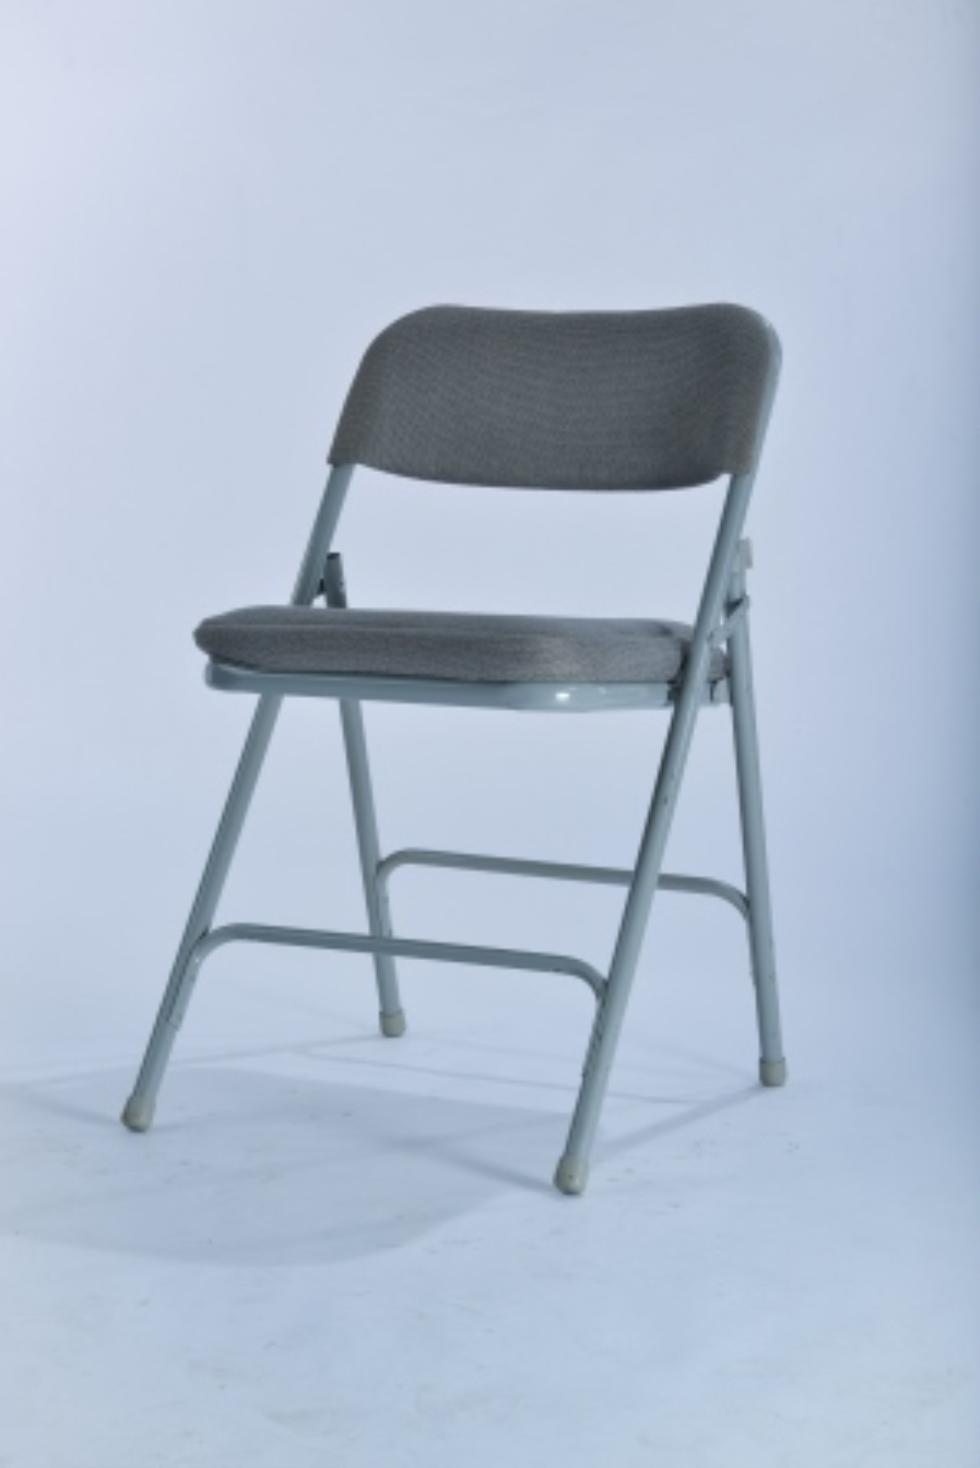 Marianne s Rentals Grey Padded Conference Chair Rentals